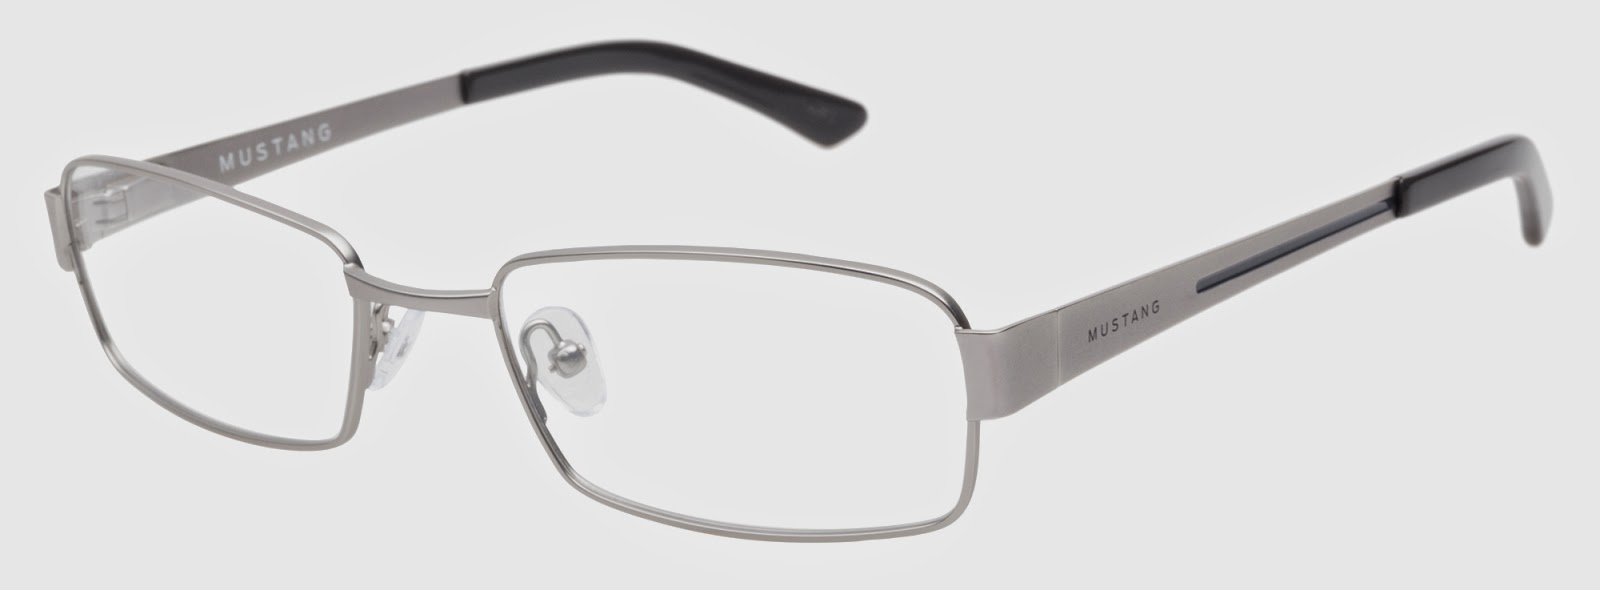 58ab82c291 Ordering anything as personal as glasses on line is tough for me. I am  fussy and I hate waiting for what I want. The frames you choose might not  fit you and ...